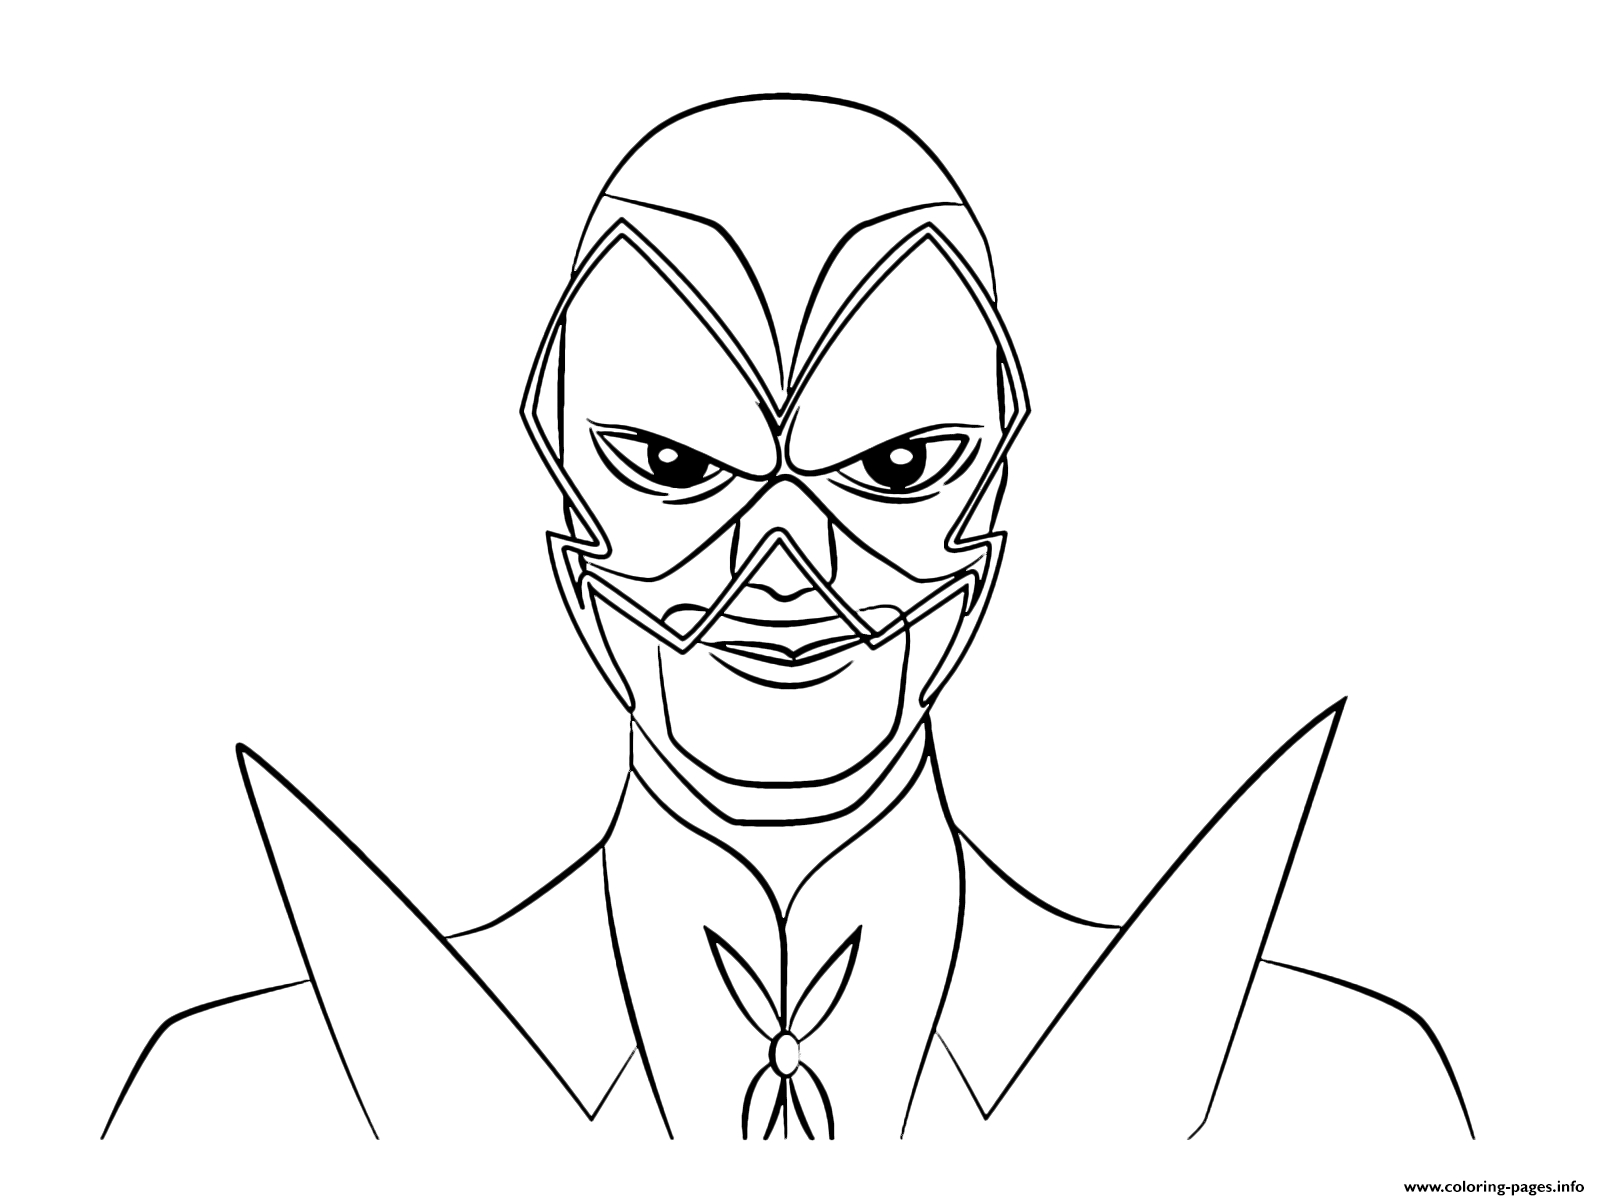 Miraculous Ladybug Coloring Pages Angry De Miraculous Ladybug Coloring Pages Printable